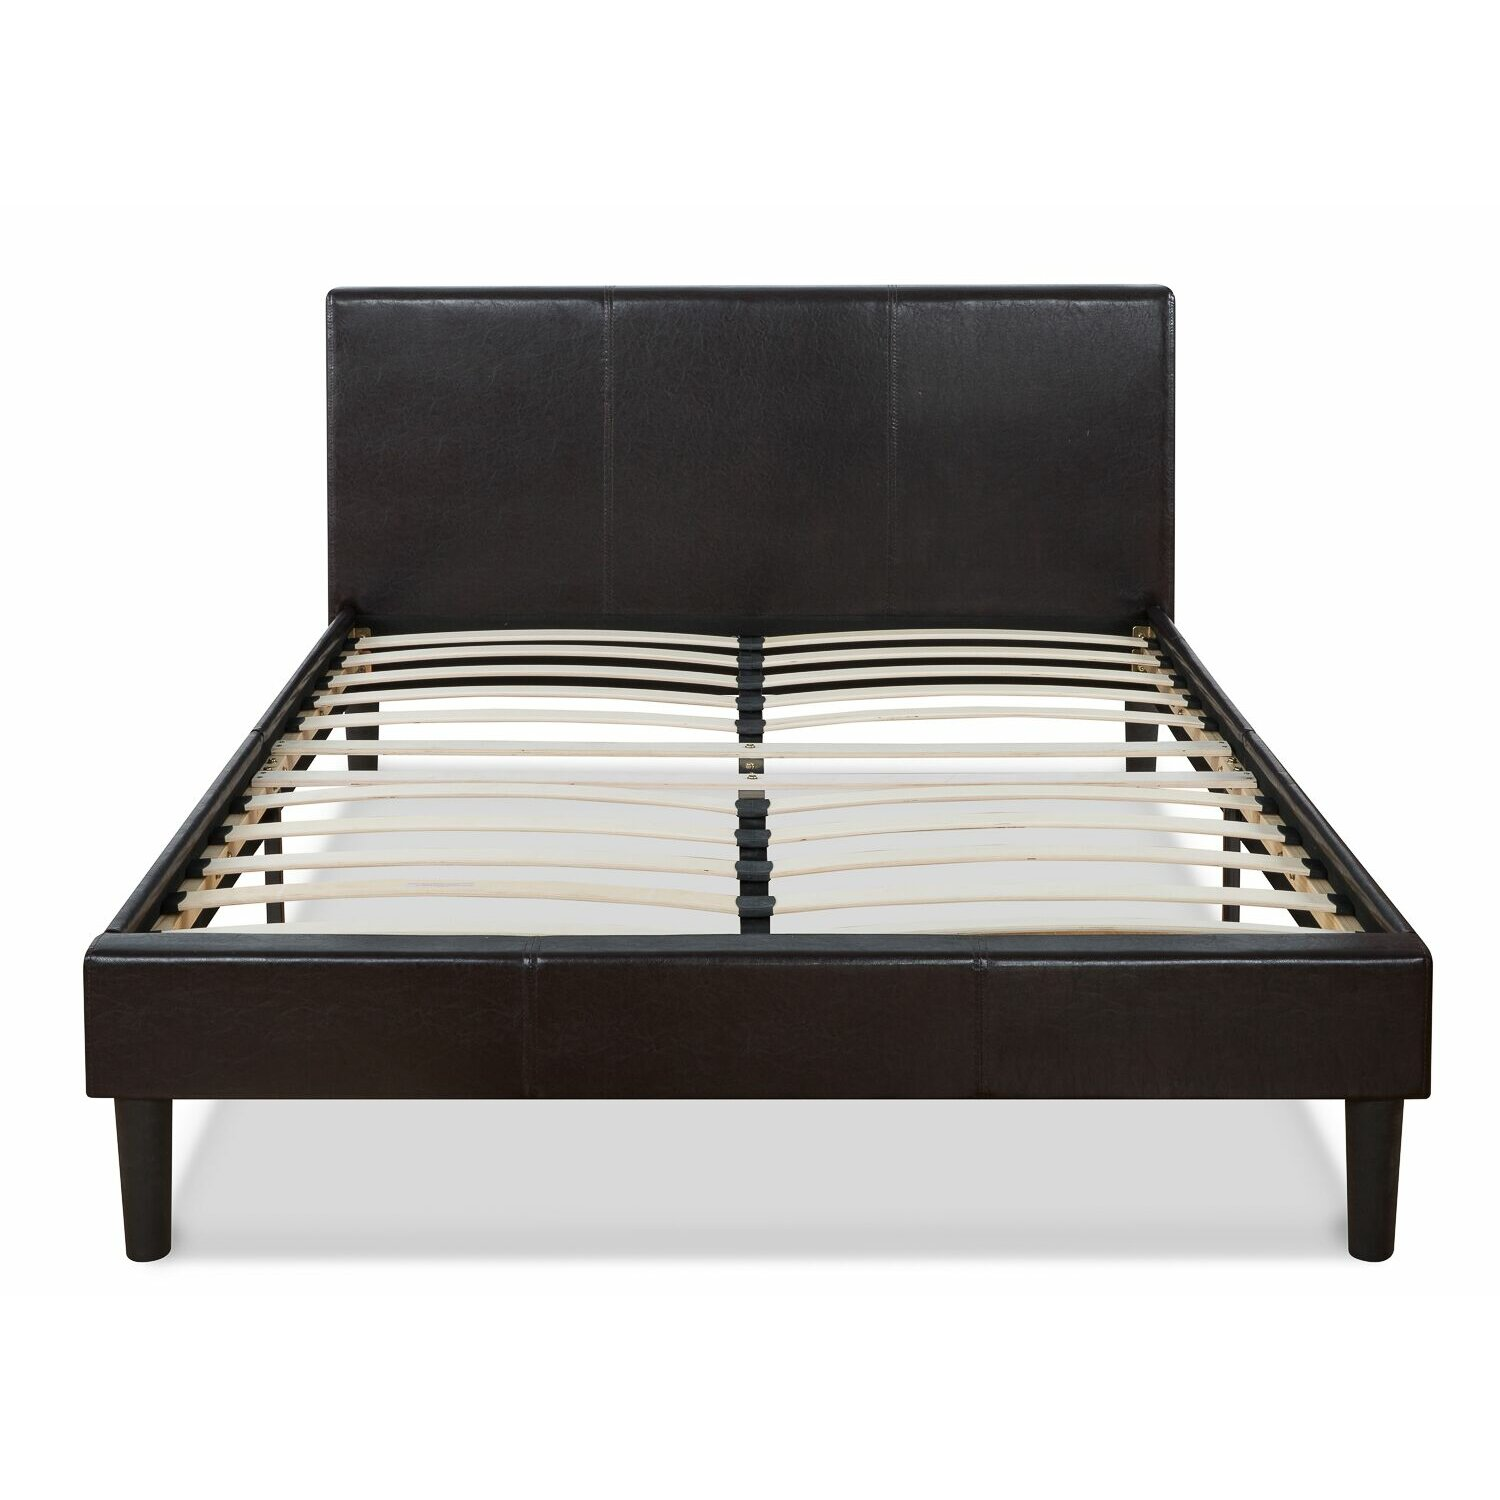 Upholstered Platform Bed : OrthoTherapy Select Upholstered Platform Bed & Reviews  Wayfair